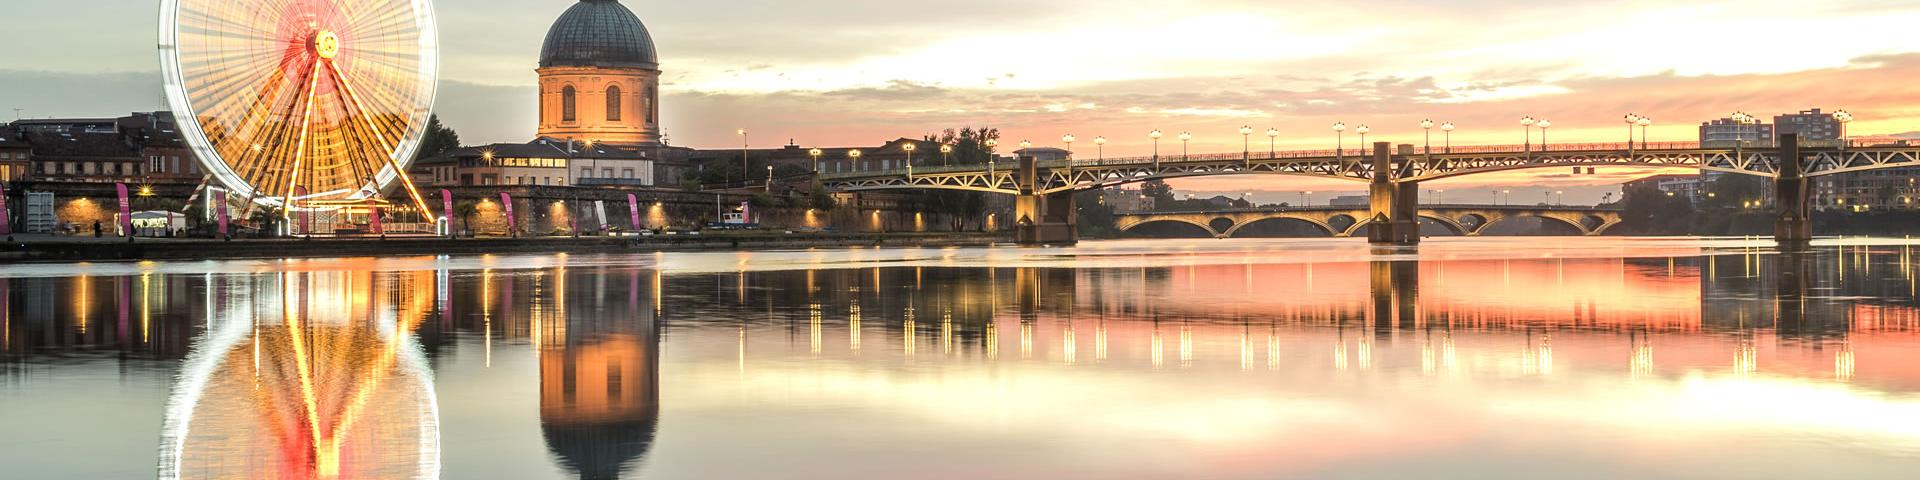 Tourism In Toulouse Holidays Breaks And Outings Visiting The